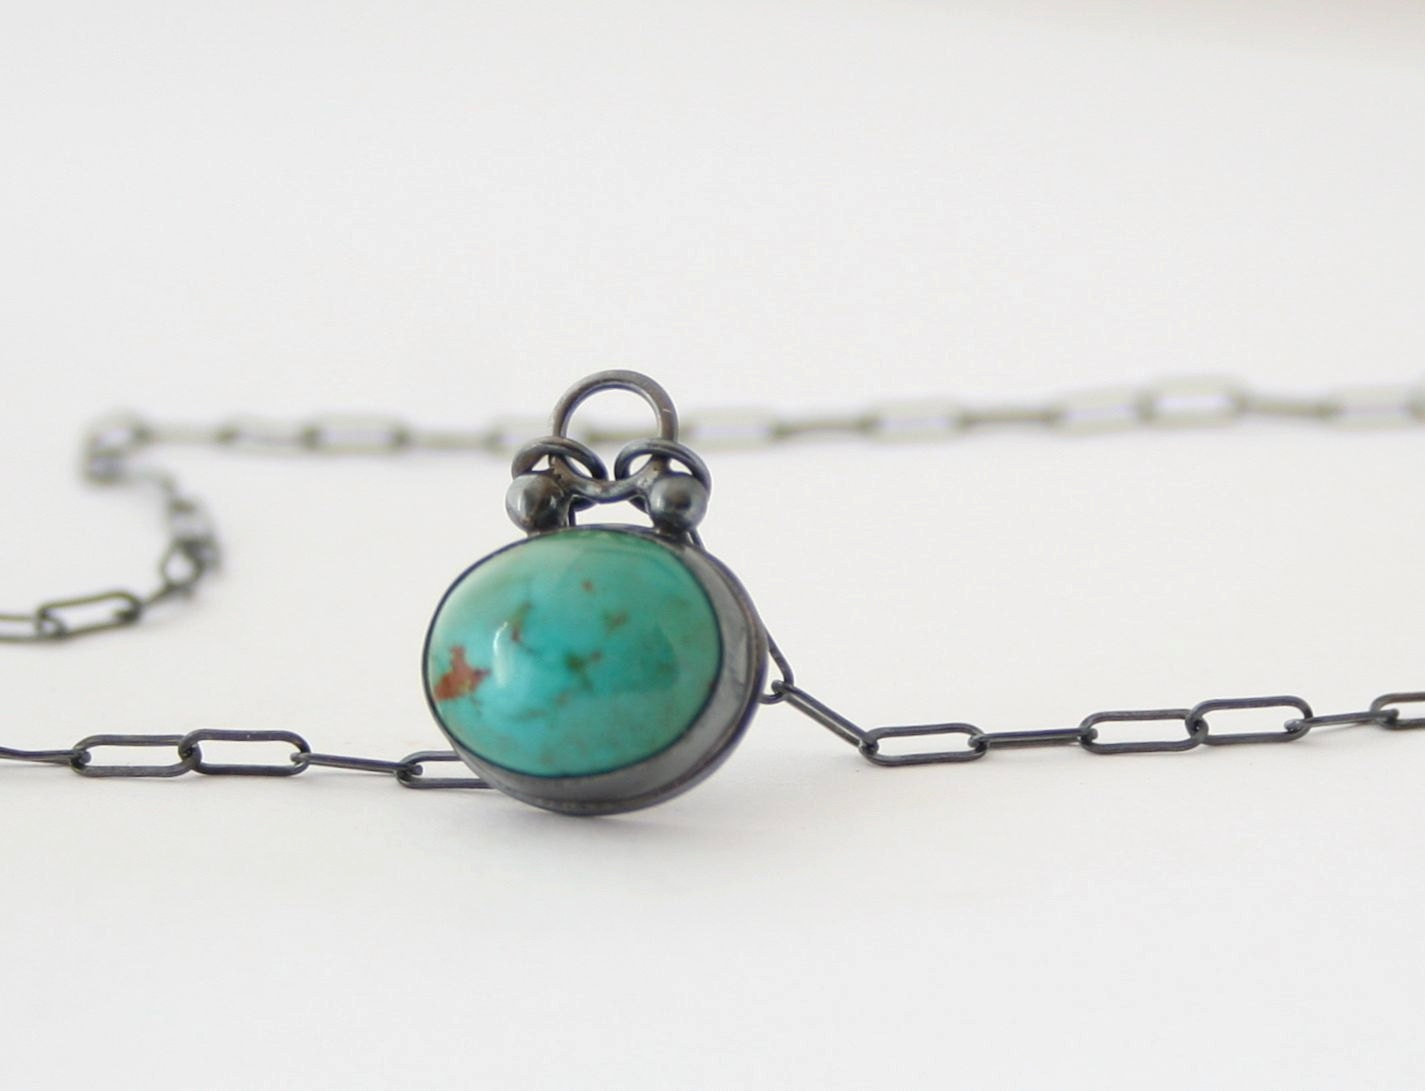 Turquoise Pendant  Necklace - Sterling Silver - Bezel Set - Natural Cabochon - Oxidized -  Blue Green Stone - CocoandChia